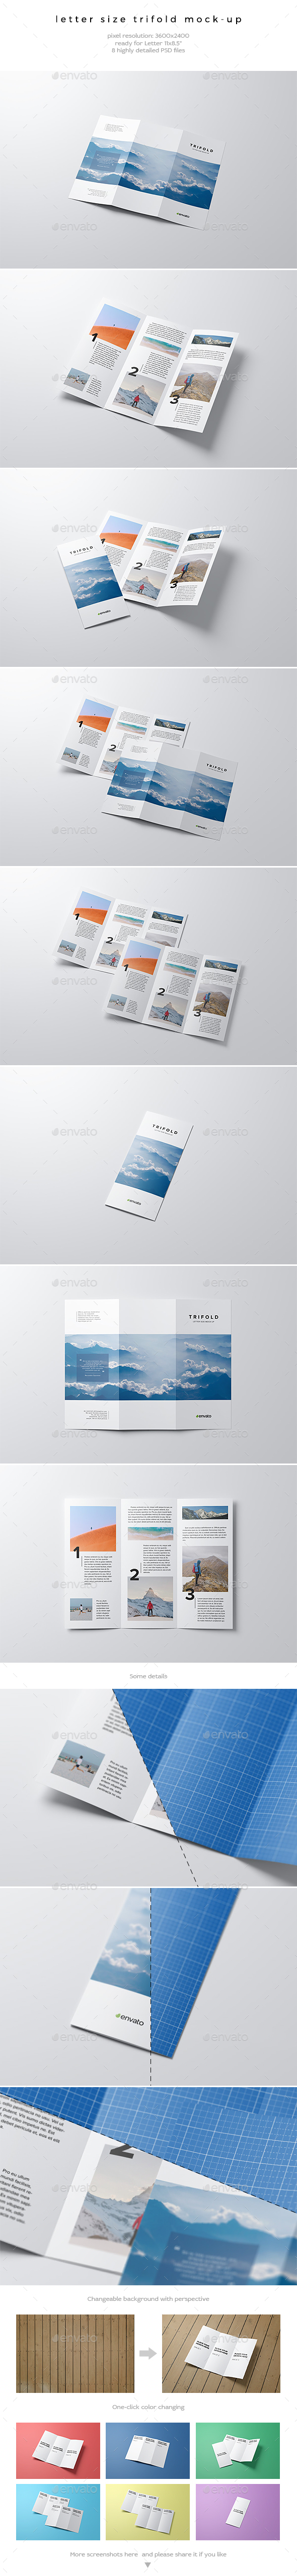 Letter Size Trifold Mock-Up - Brochures Print